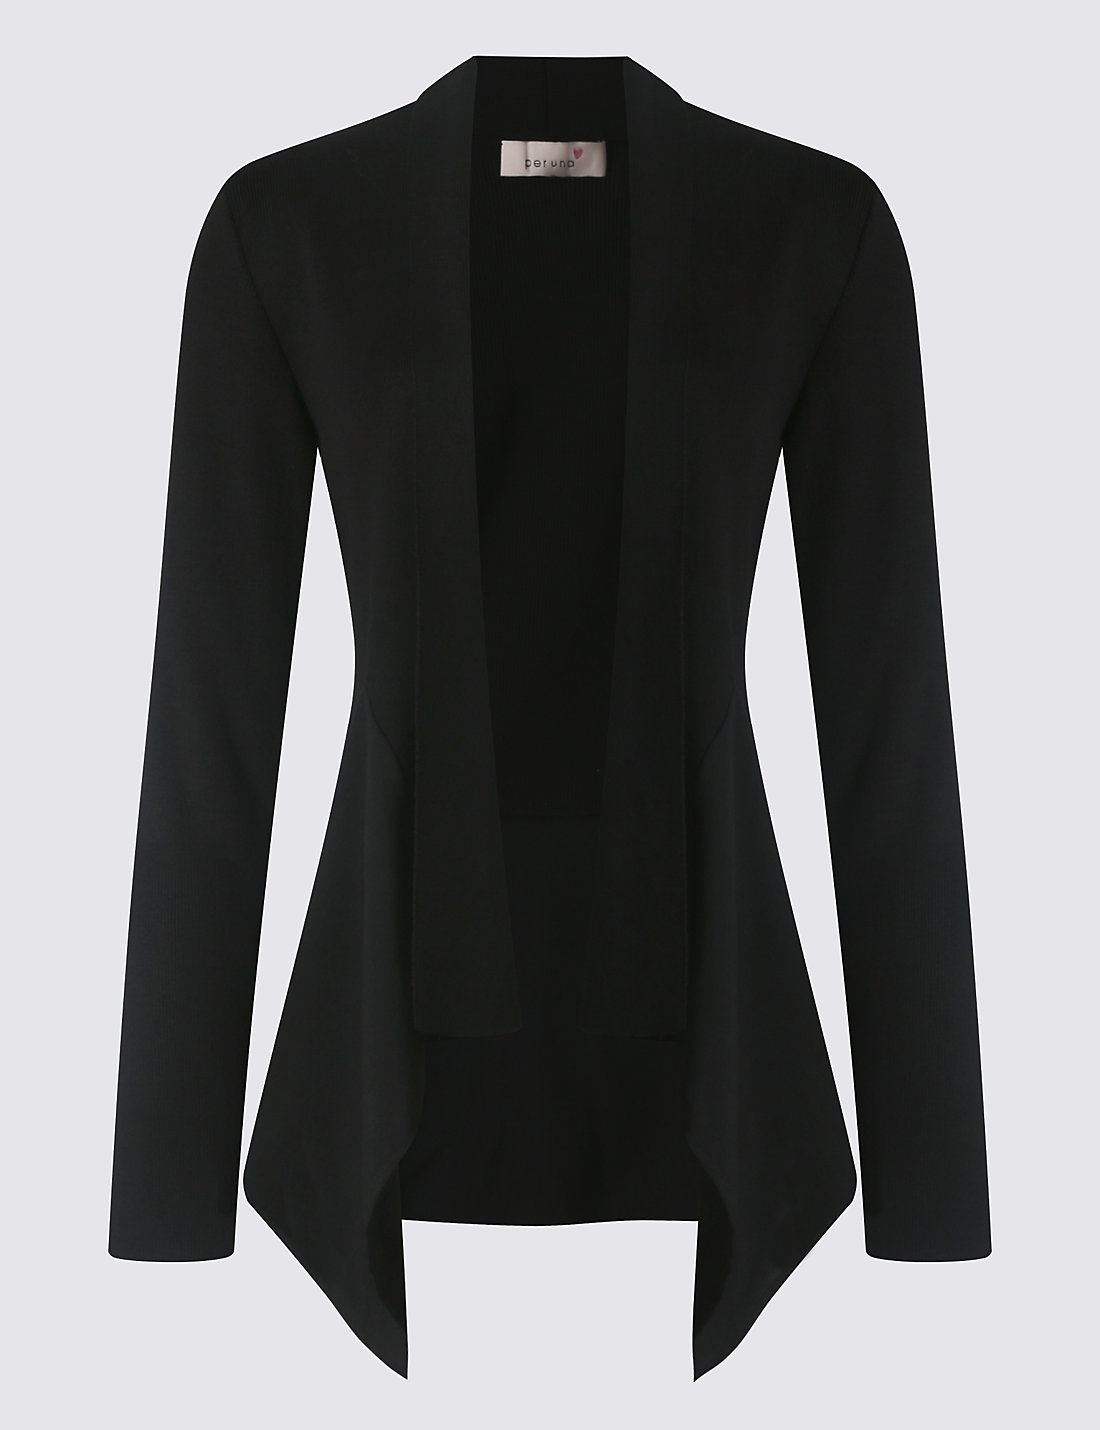 Black t shirt back and front plain - Open Front Waterfall Cardigan